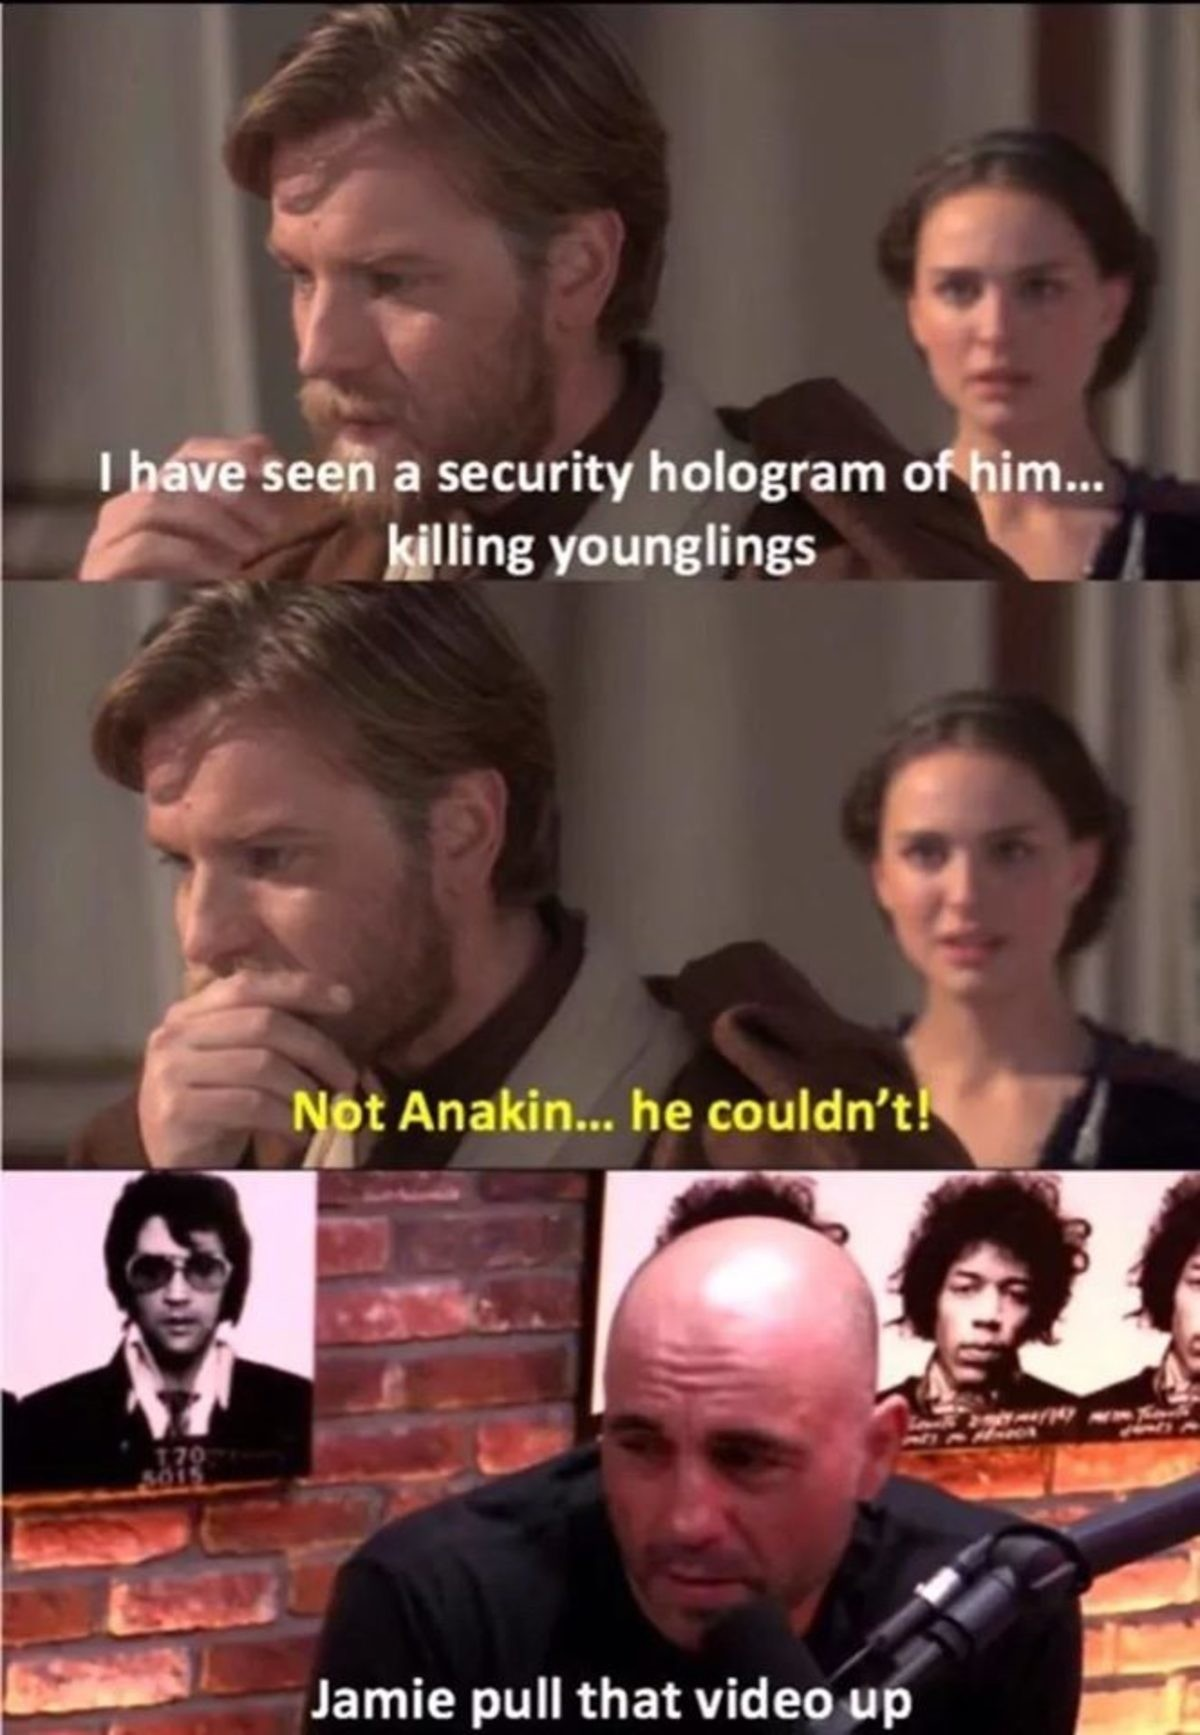 Star Wars Joe Rogan. .. laughs every time he says younglings to the point where he has to cover his face just to make it filmable.